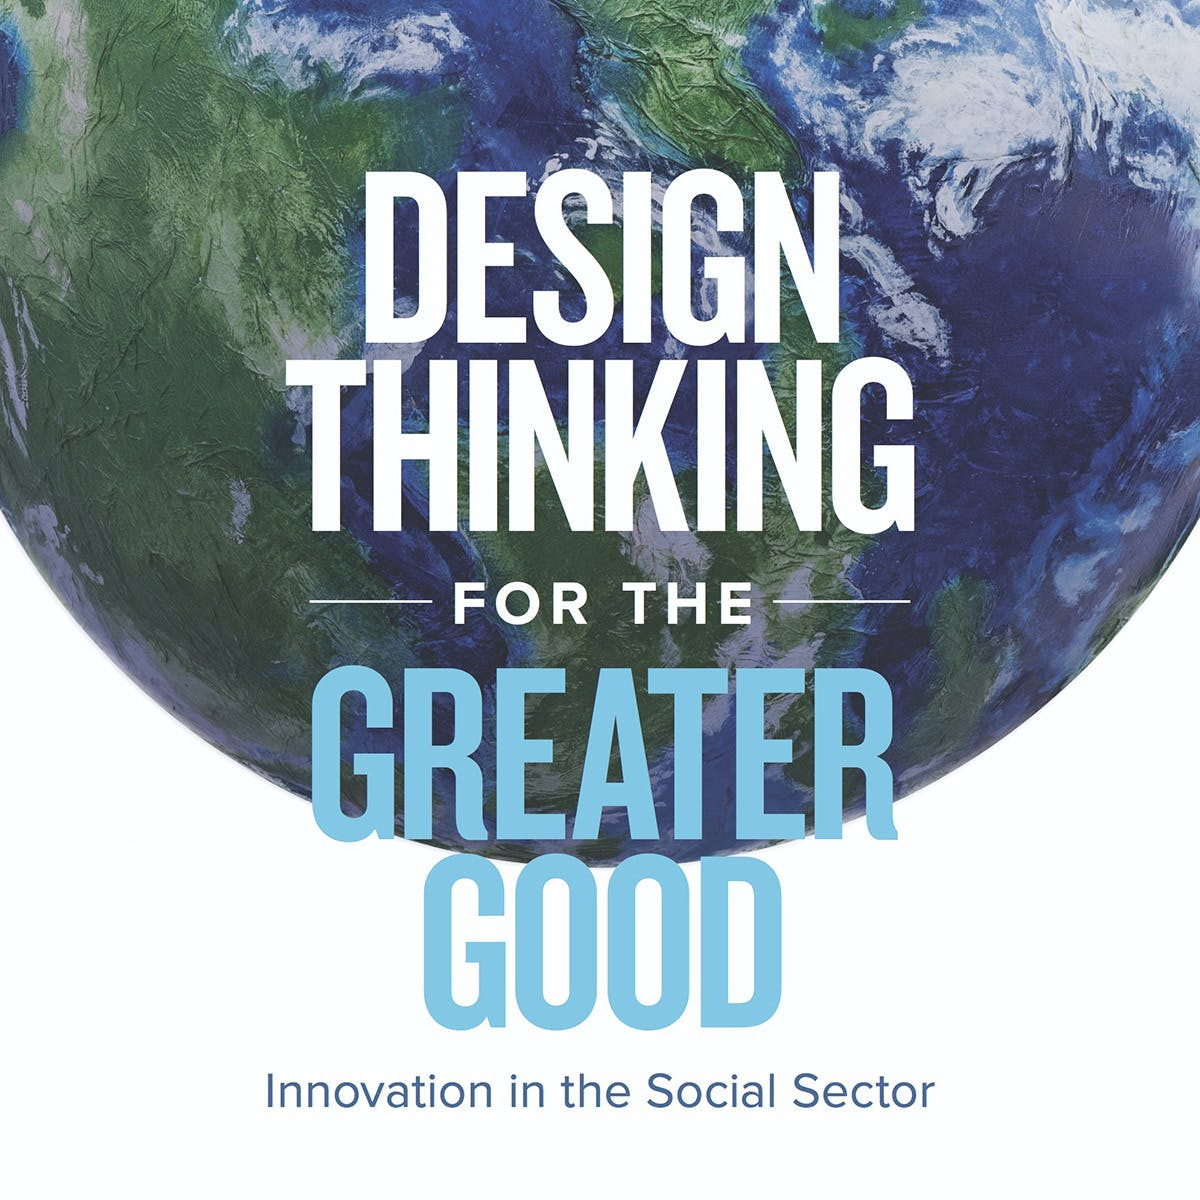 Design Thinking For The Greater Good Innovation In The Social Sector Coursera